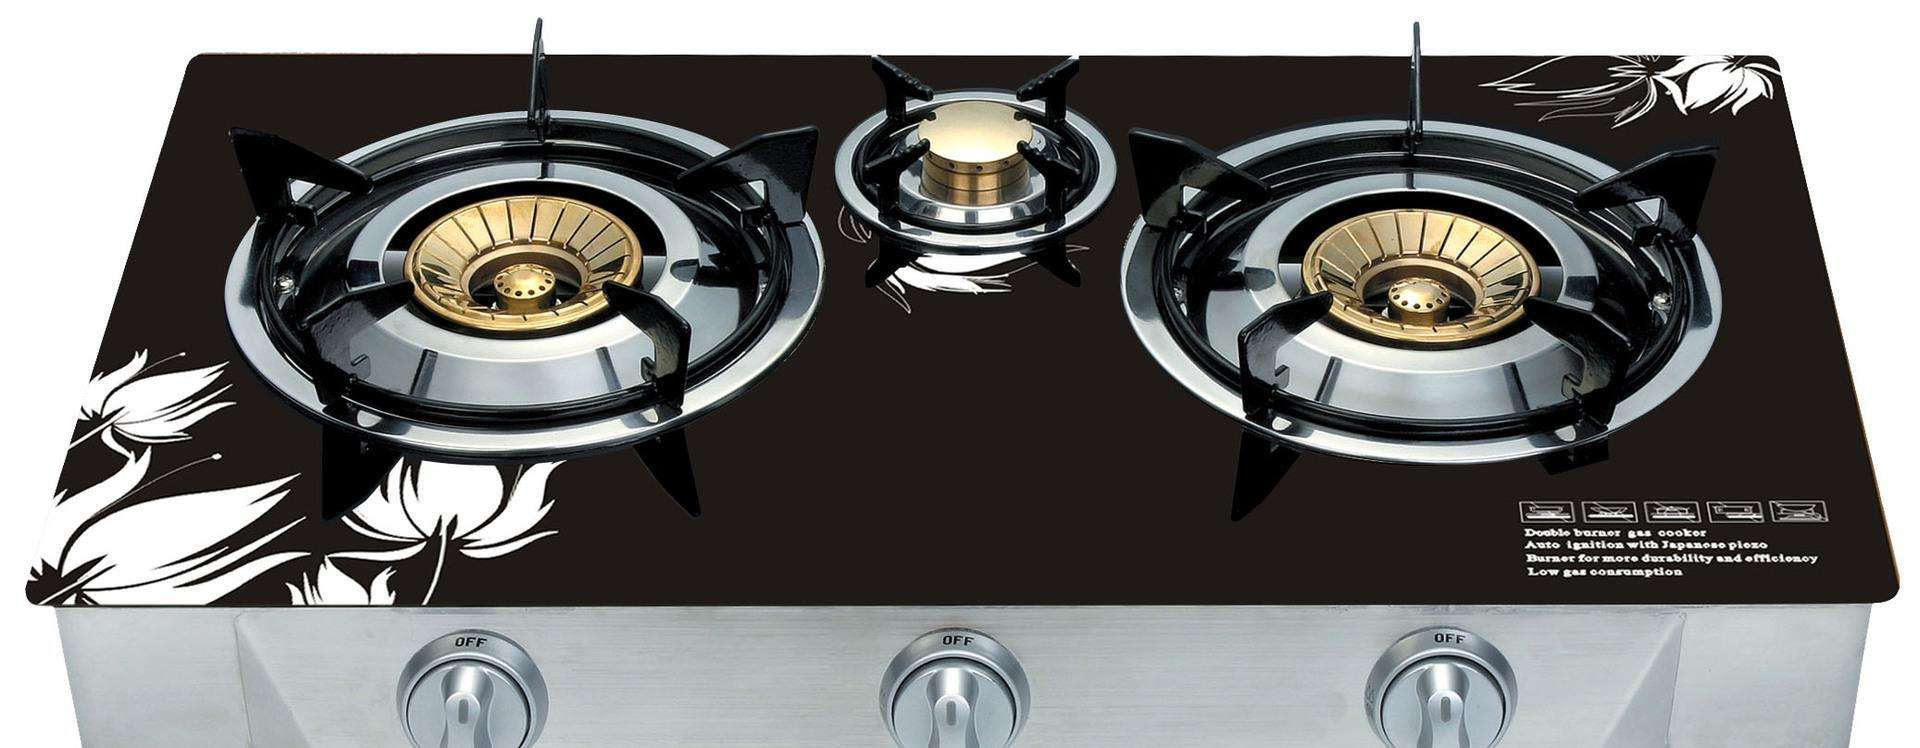 Exports of gas stove manufacturers